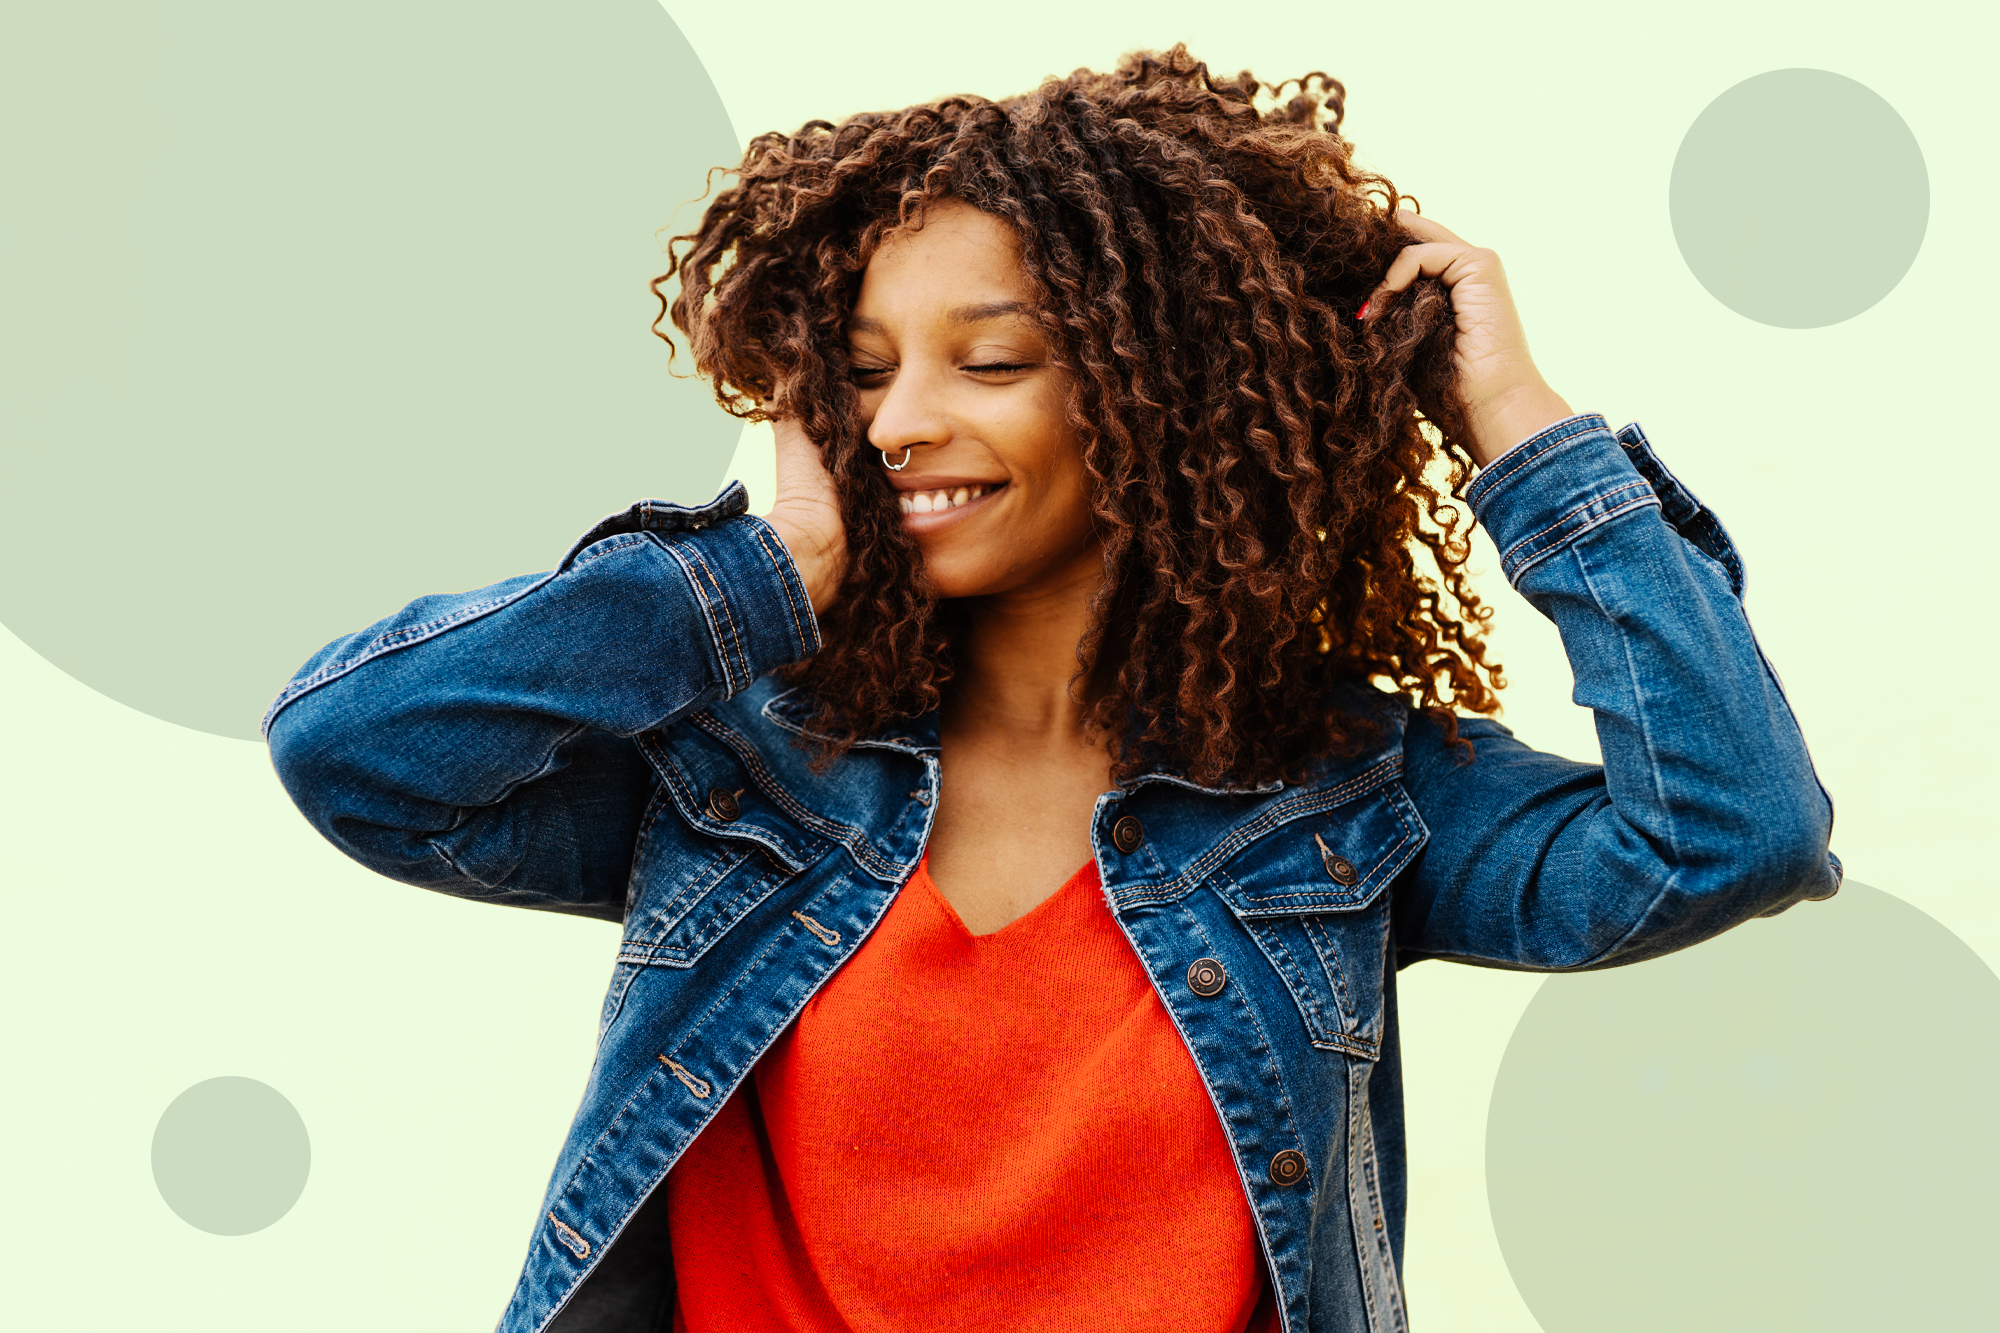 Aa woman flipping her hair on a designed background